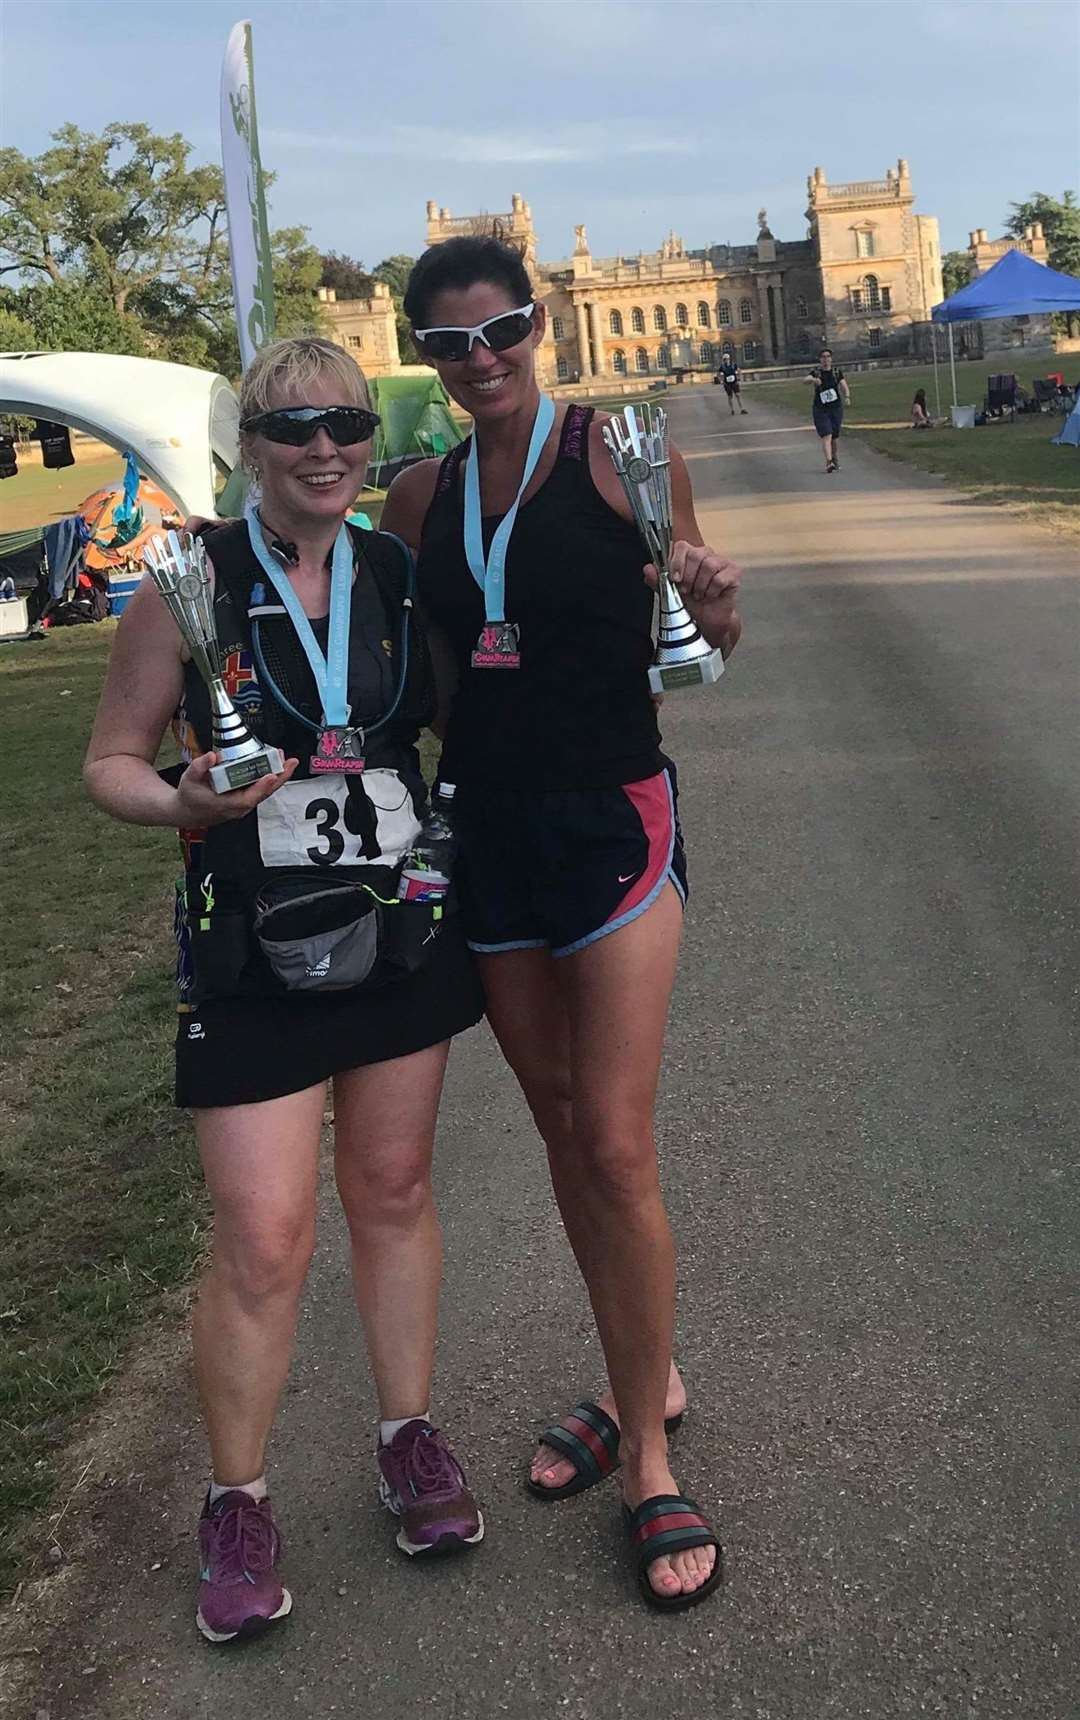 Sarah-Jane Macdonald (2nd Female) and Nicole Coughlin (1st Female) on their first 40 mile GrimReaper Ultra marathon (3449811)